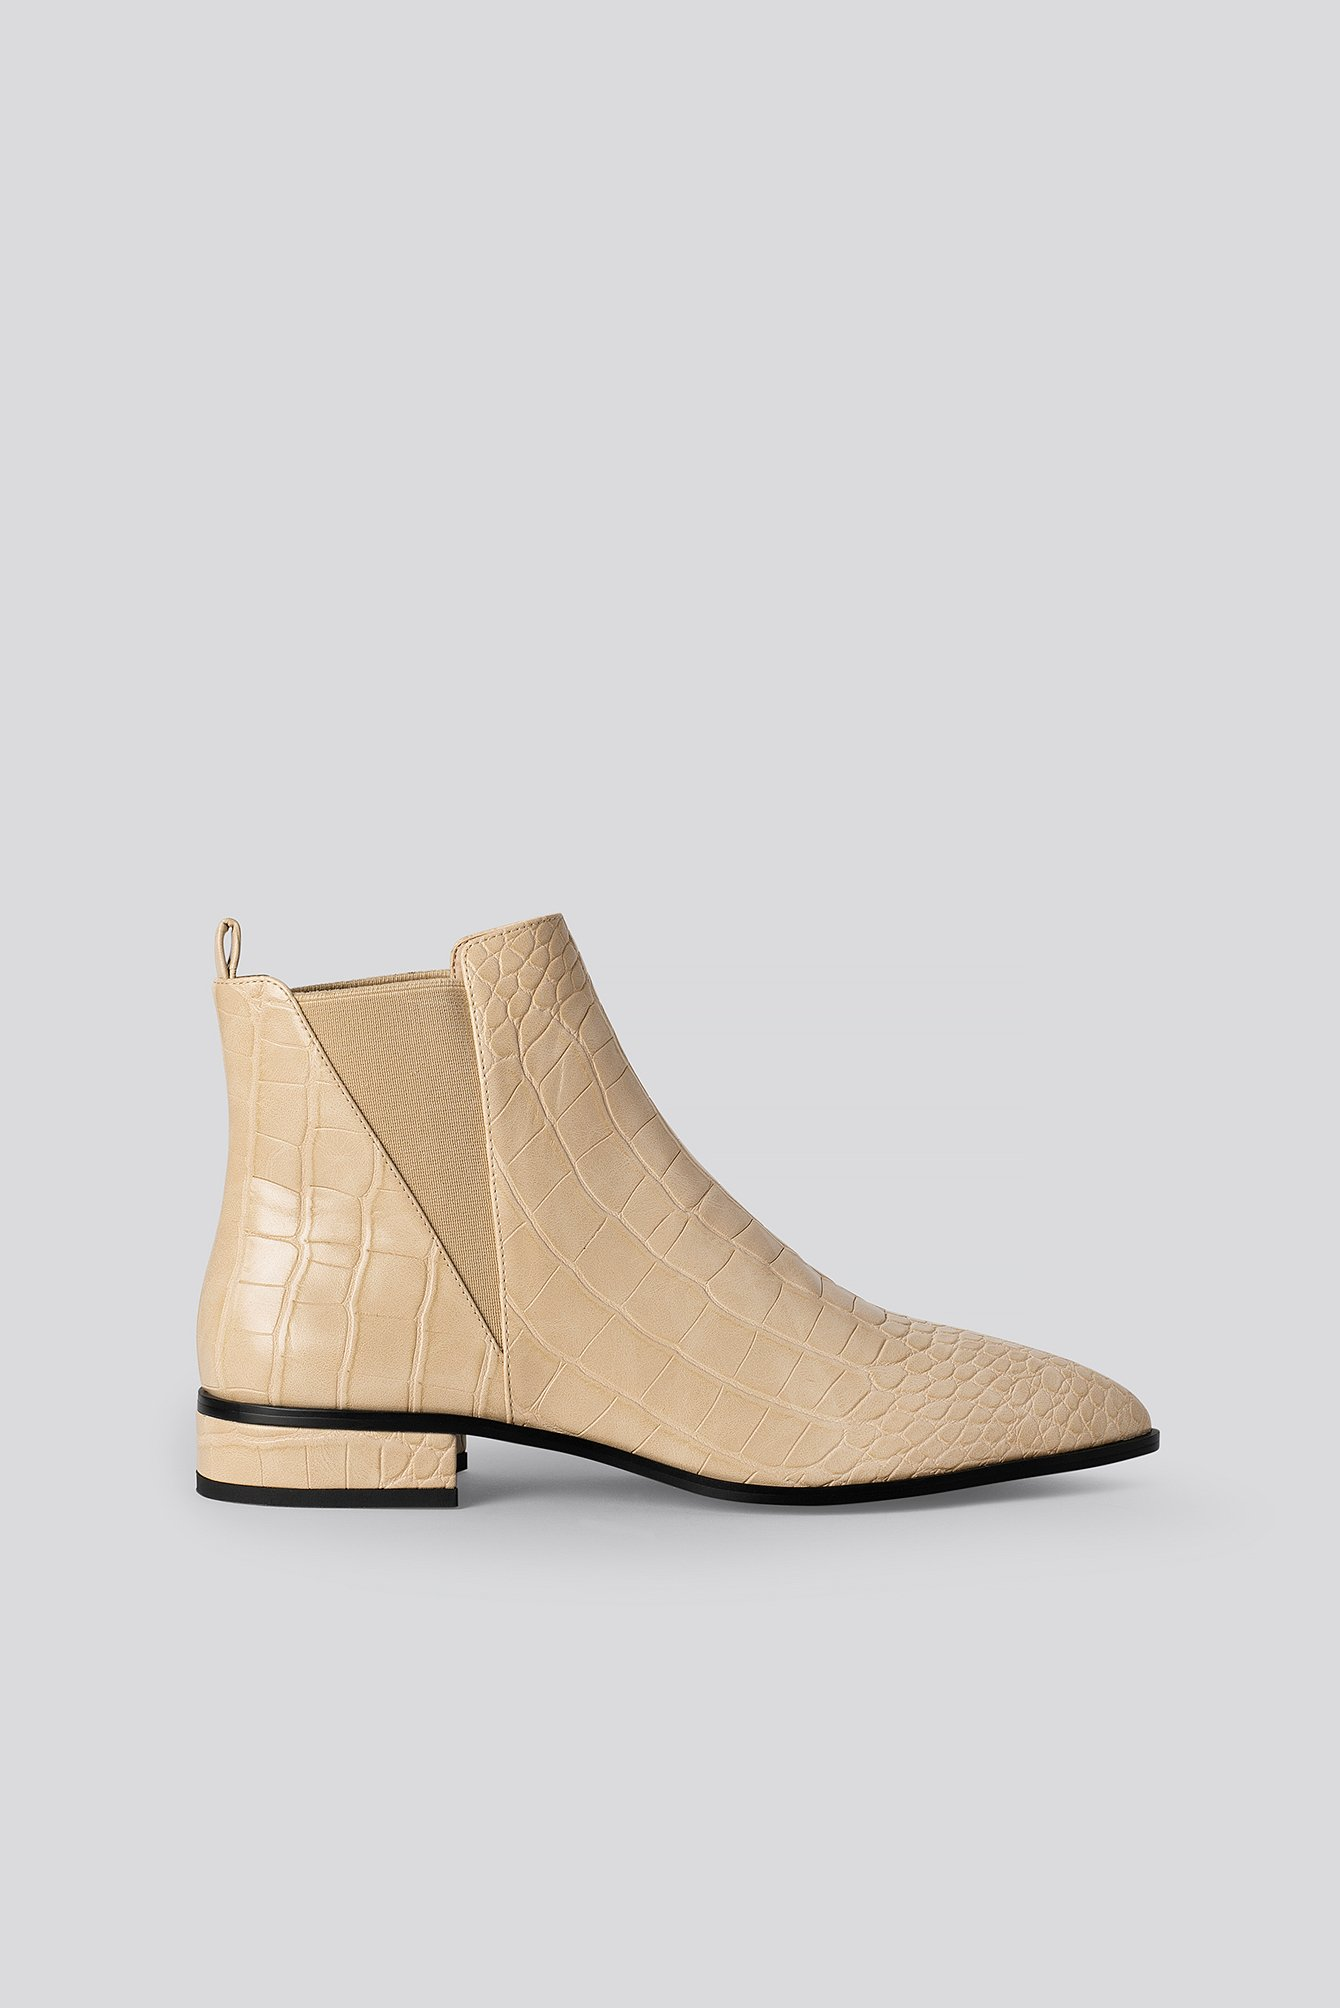 Glossy Beige Croc Low Pointy Chelsea Boots